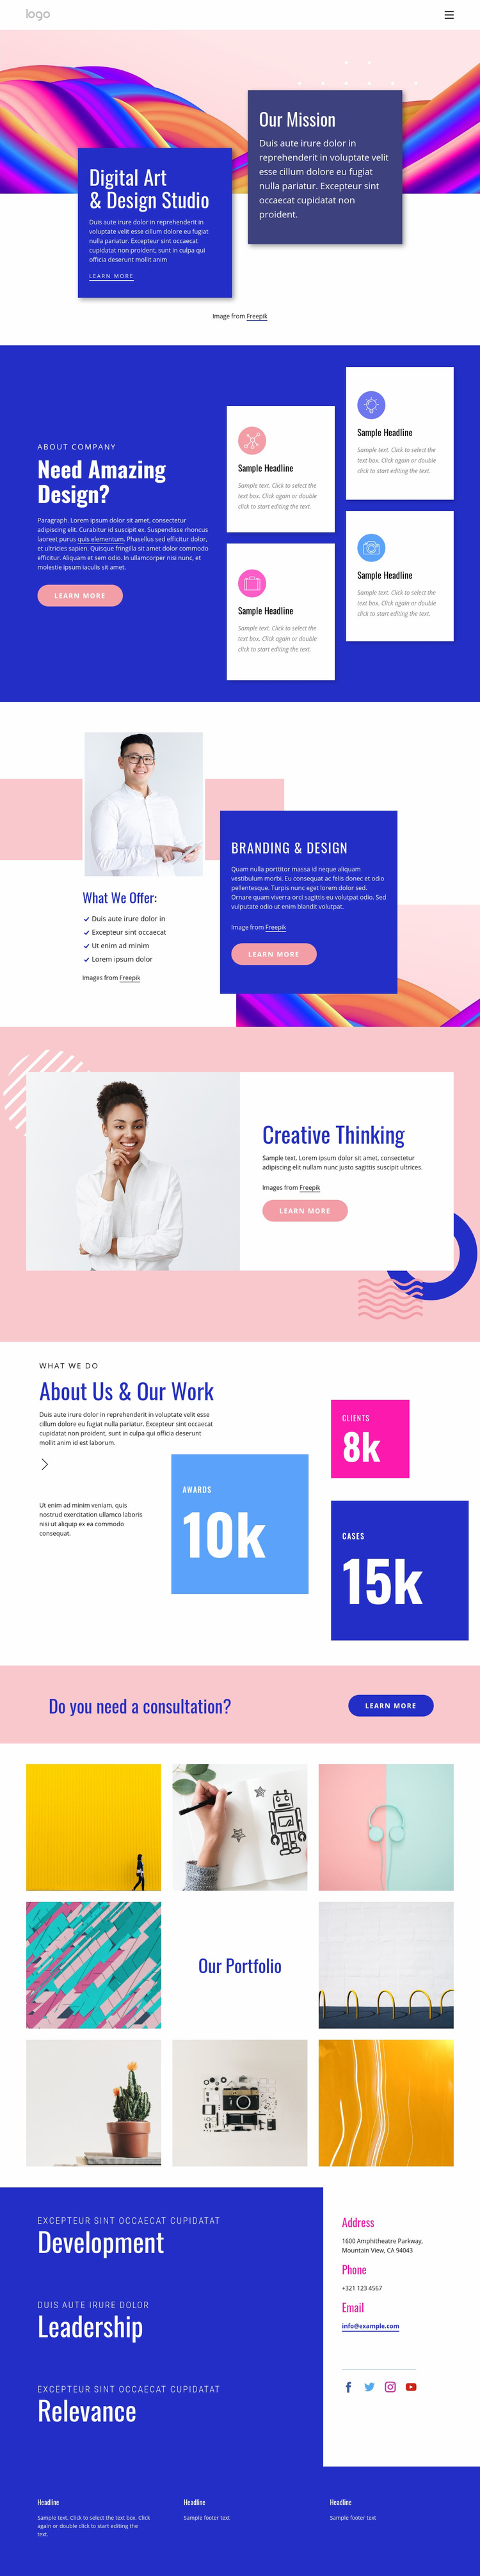 Create content that connects Web Page Designer